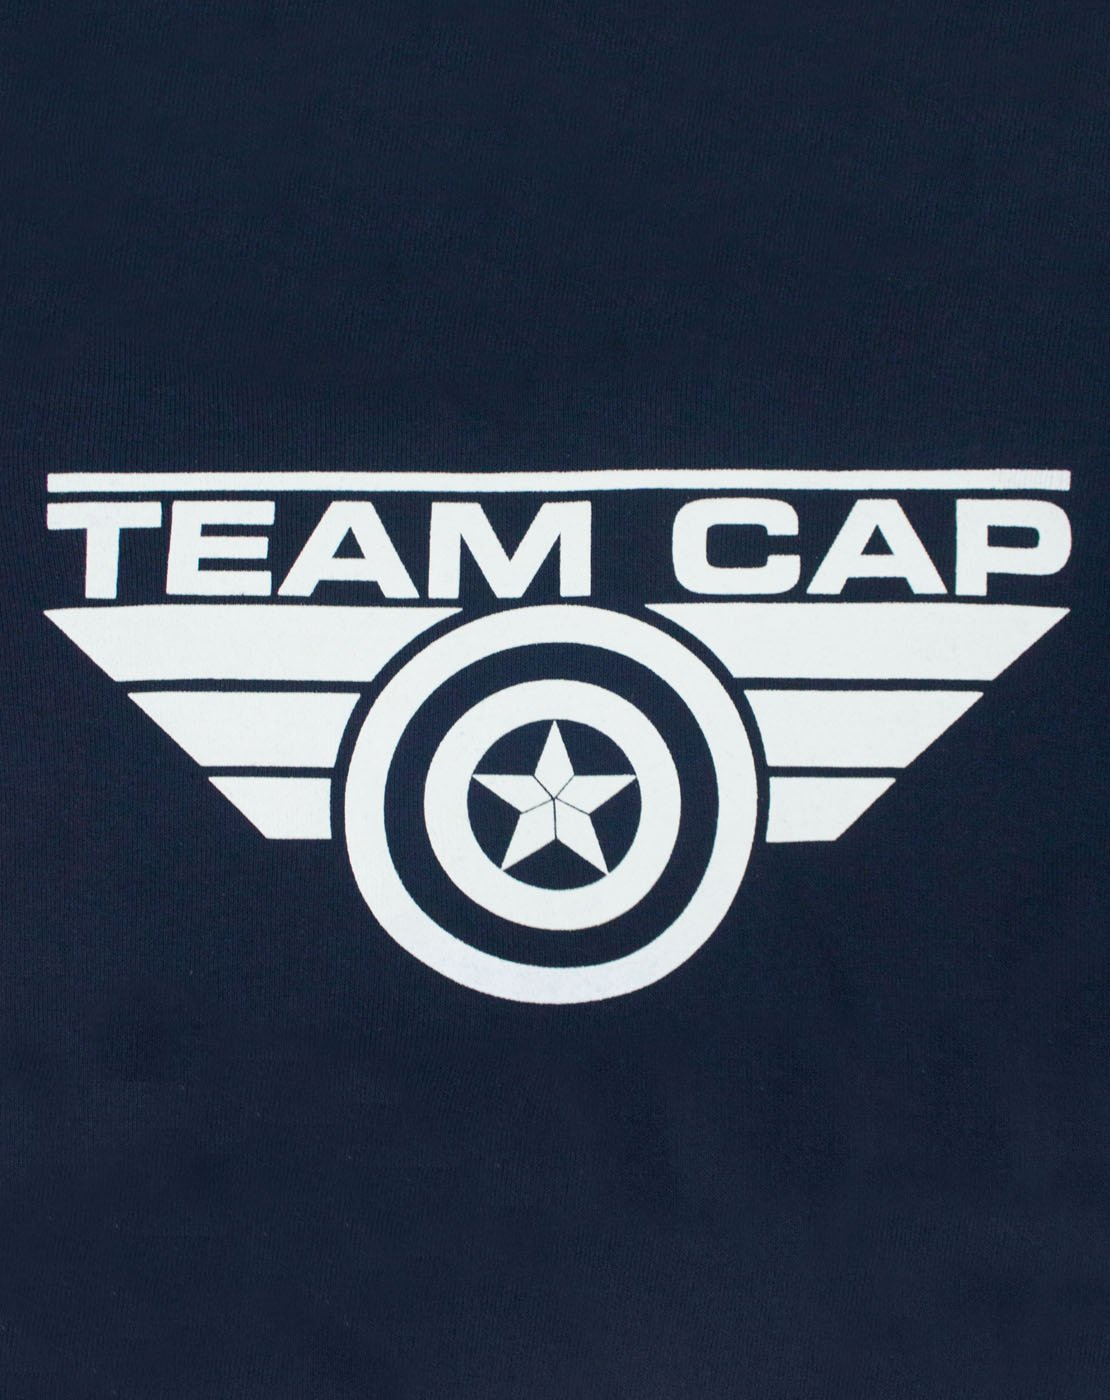 Captain America Civil War Team Cap Kid's Unisex Hoodie